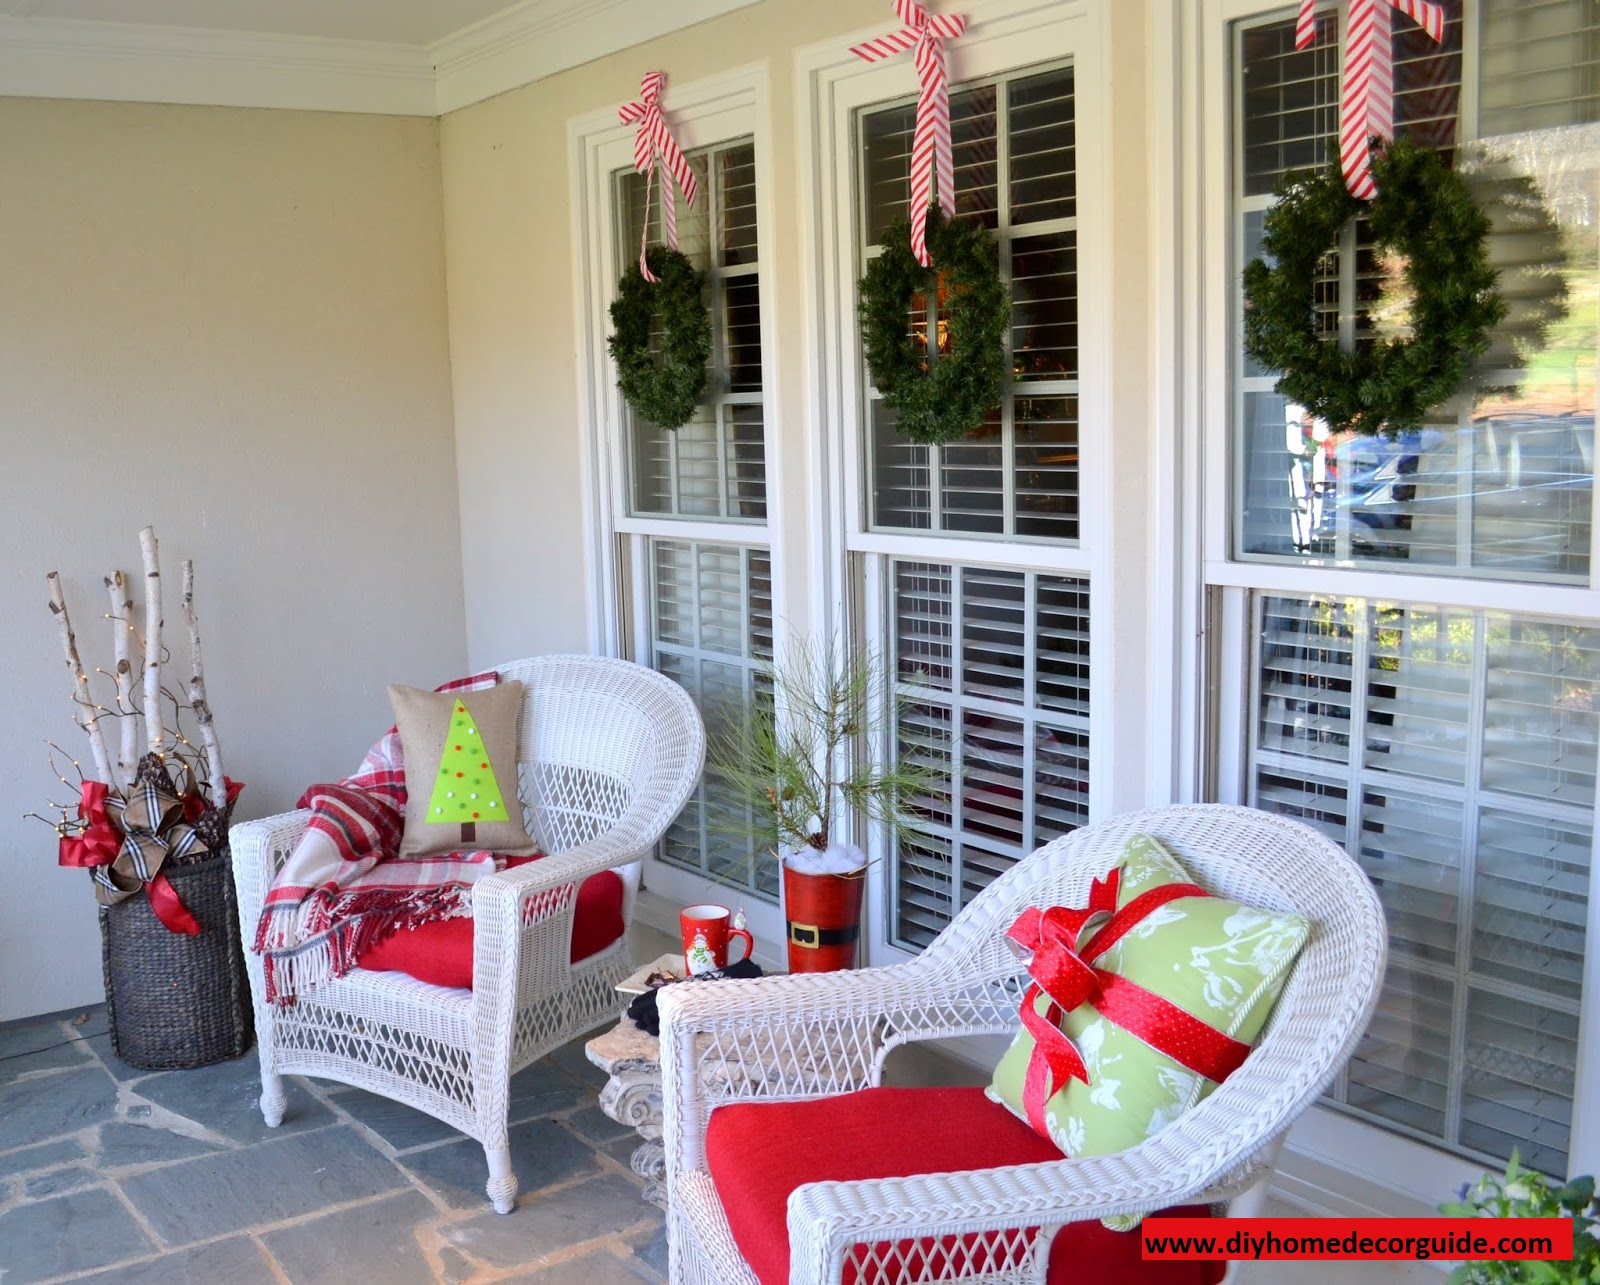 Home Decorating Ideas 2014 20 diy outdoor christmas decorations ideas 2014